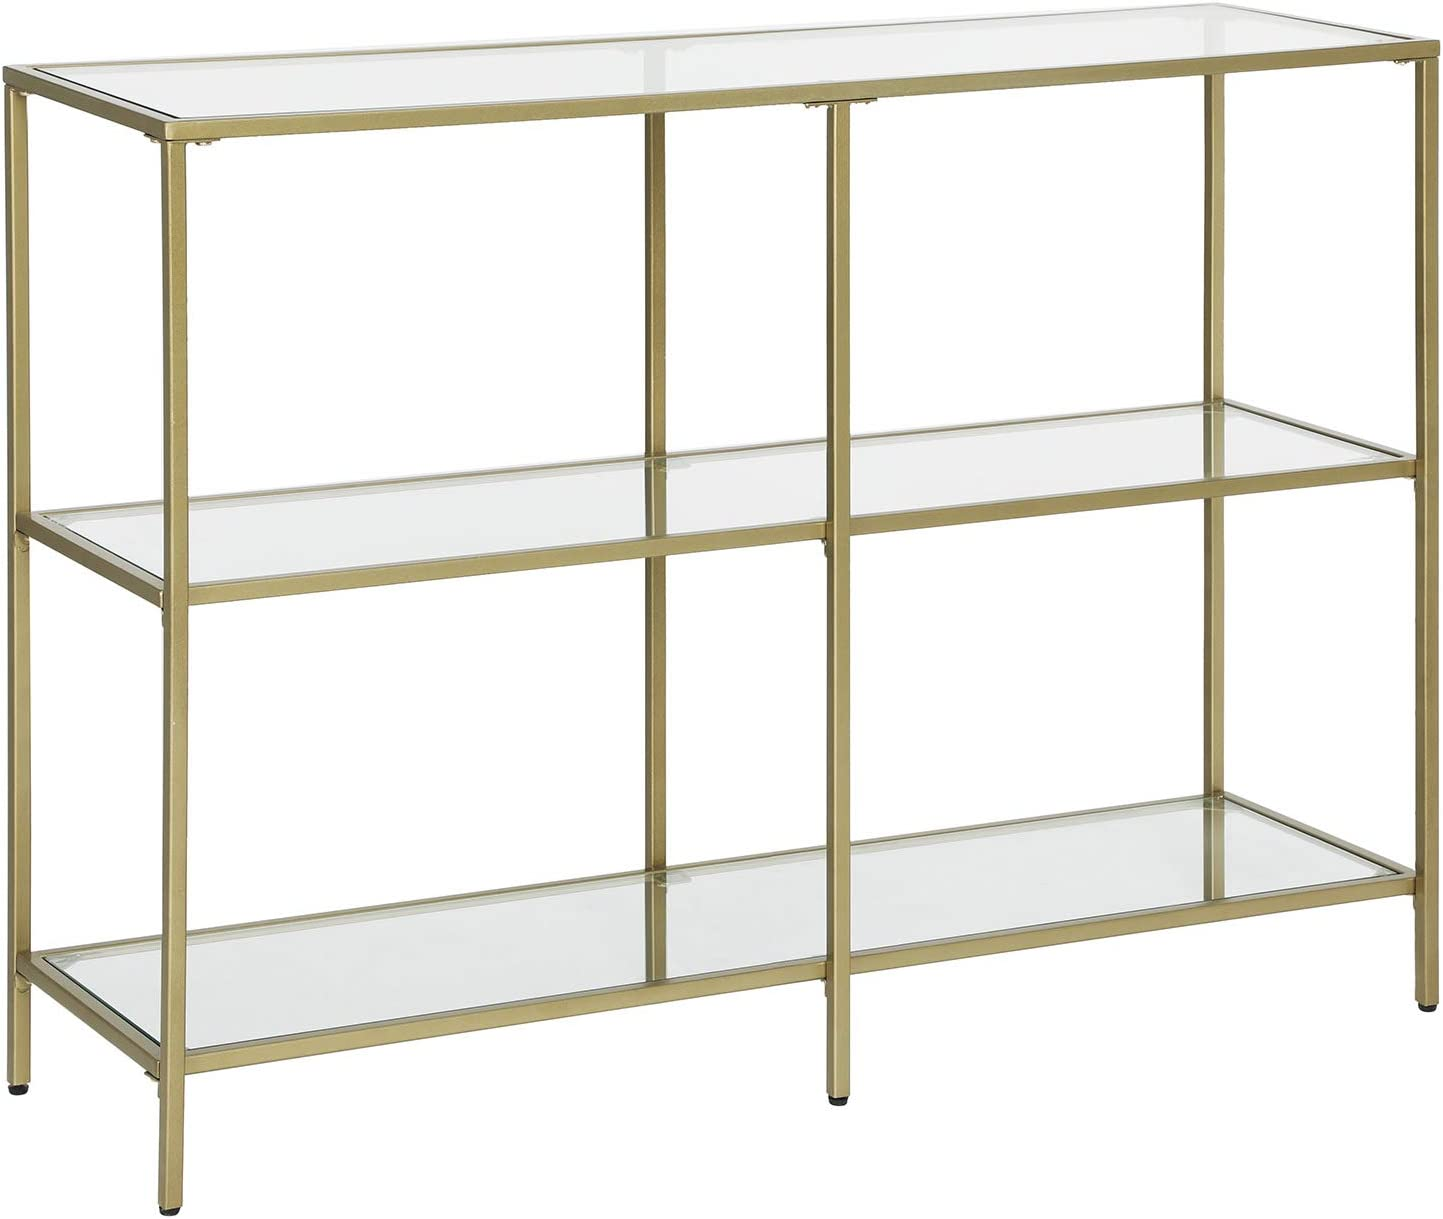 VASAGLE Console Table, Tempered Glass Sofa Table, 3-Tier Storage Rack, Modern Shelf, Sturdy, Easy to Assemble, for Living Room, Hallway, Kitchen, Golden ULGT27G